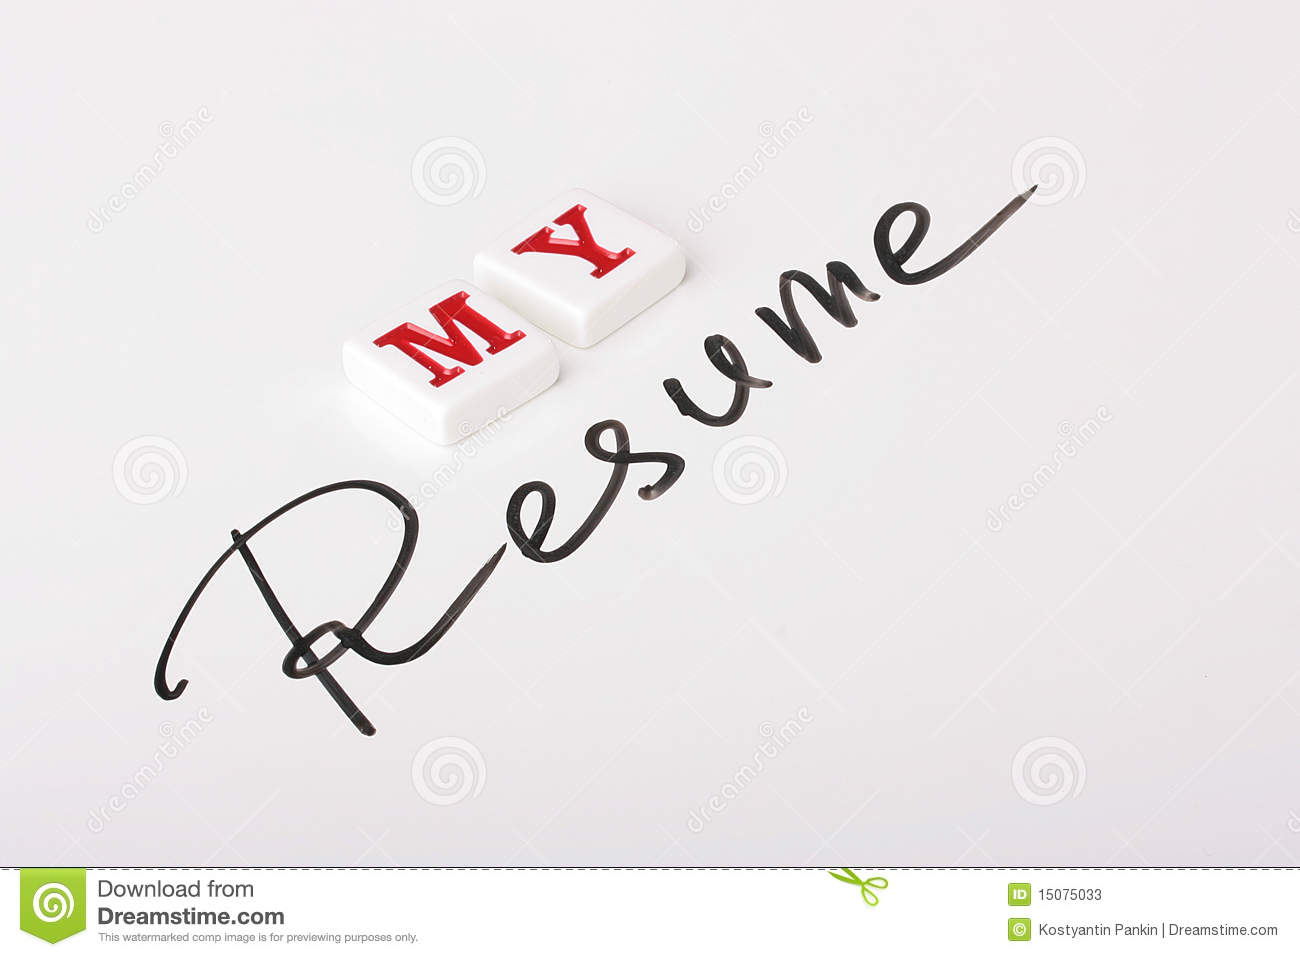 Scannable Resumes   Uses nouns indicating specific job functions   skills  responsibilities  see